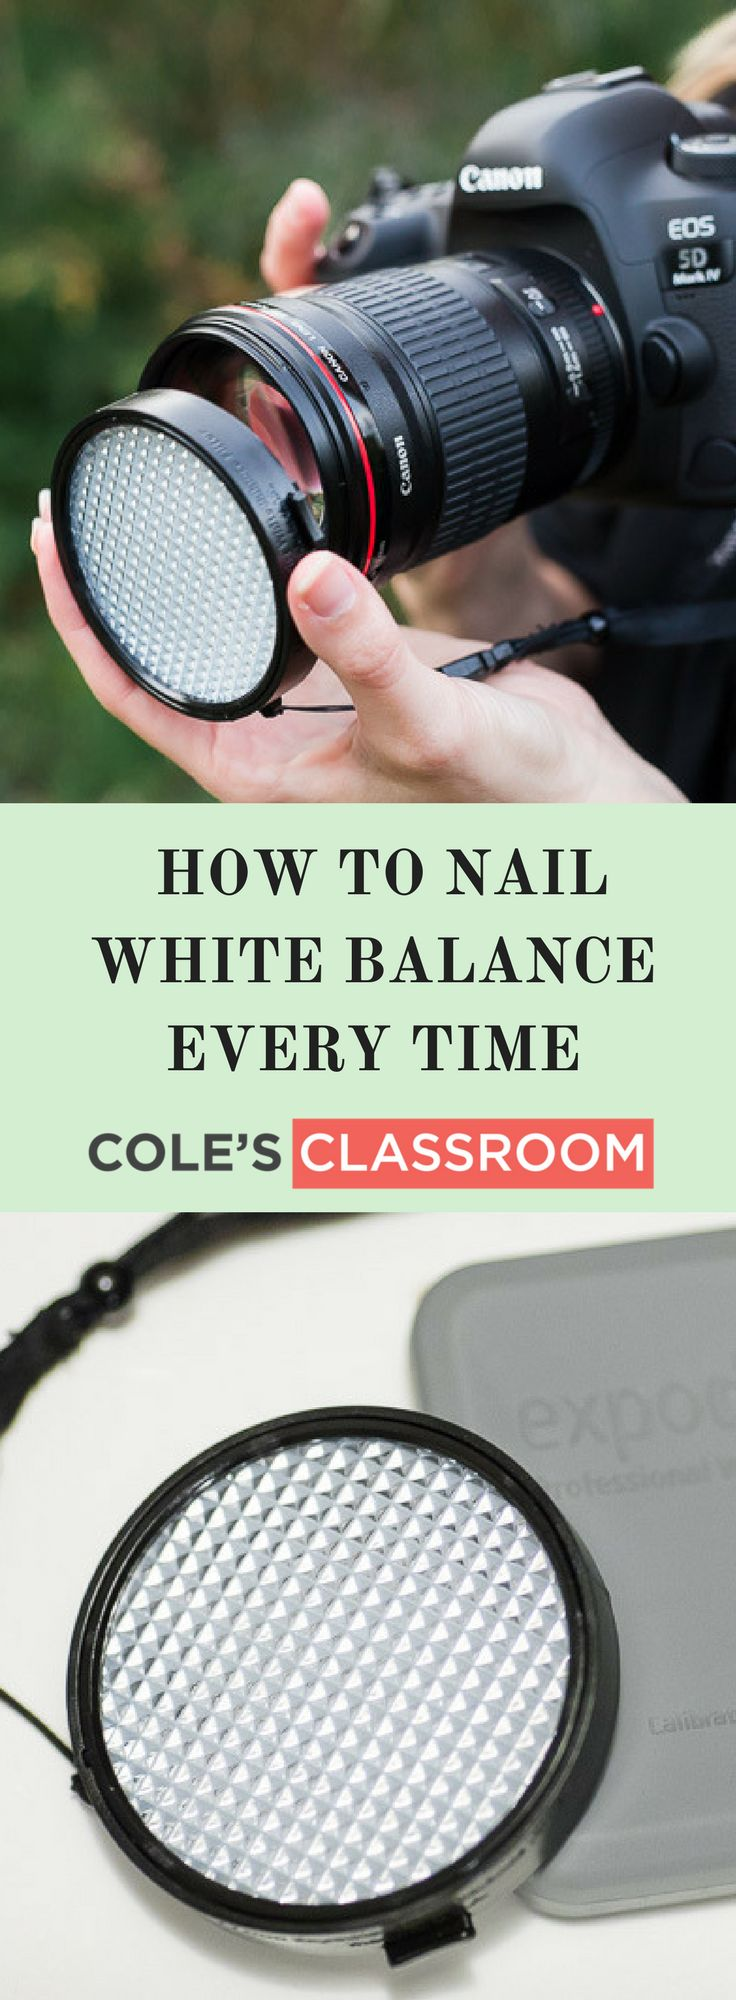 White Balance Tips: How to Nail White Balance Every Time: Discovering the ExpoDisc Learn more at: https://www.colesclassroom.com/nail-white-balance-every-time-discovering-expodisc/